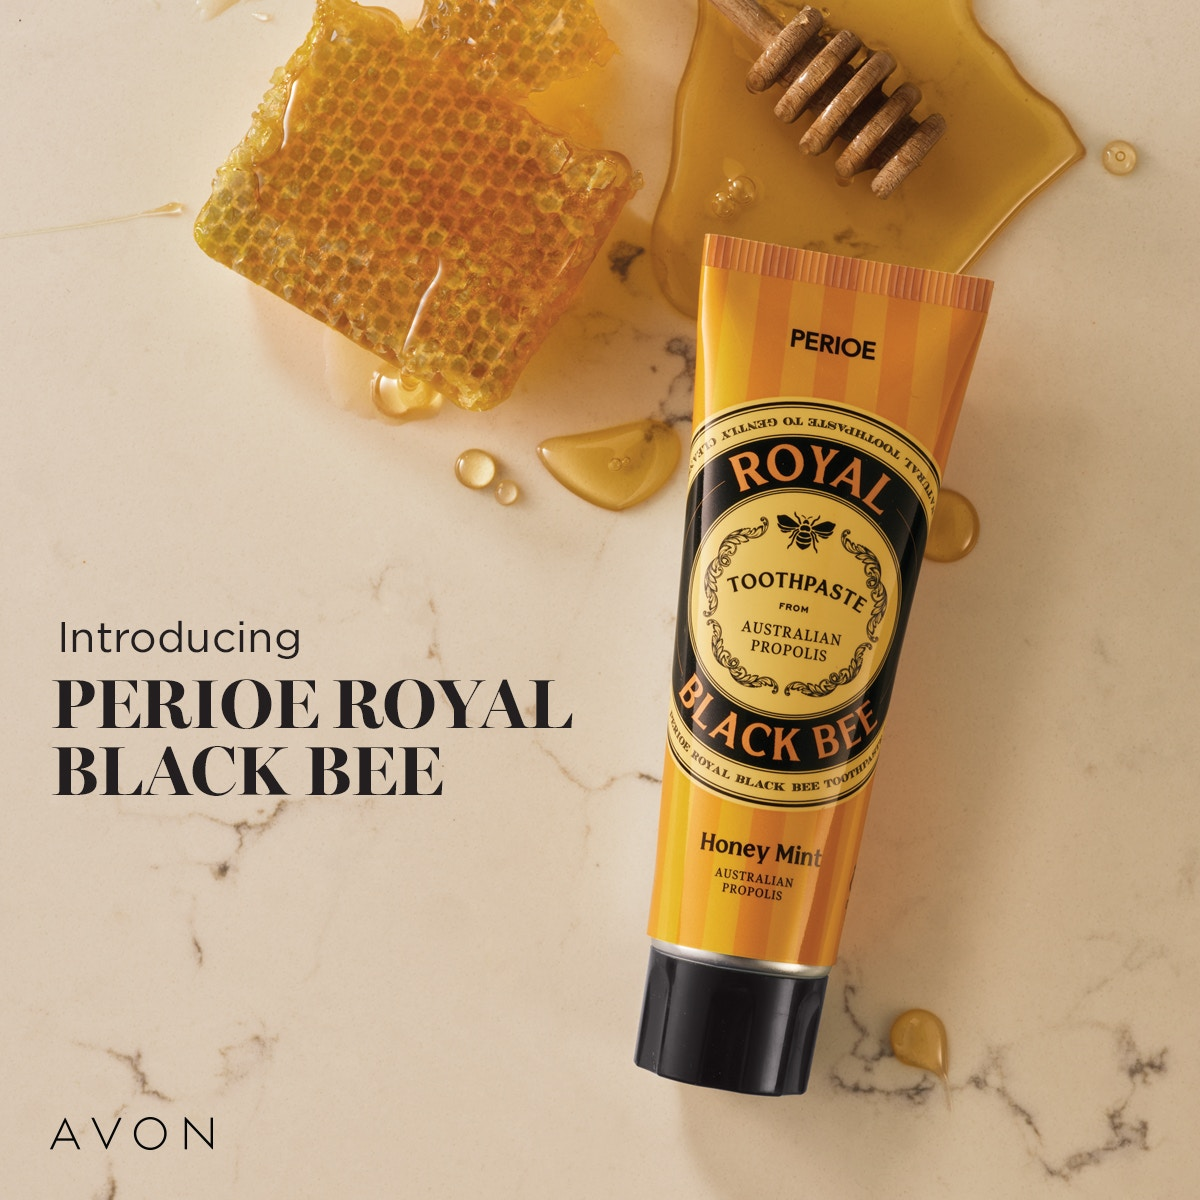 COMING SOON! Fluoride-free oral care with all of that good stuff that bees make: royal jelly and Australian propolis extract, known for nourishment and soothing properties. https://t.co/IixEHuFs53 #oralcare #toothpaste #fluoridefree #royaljelly https://t.co/ddMF6ngu8j